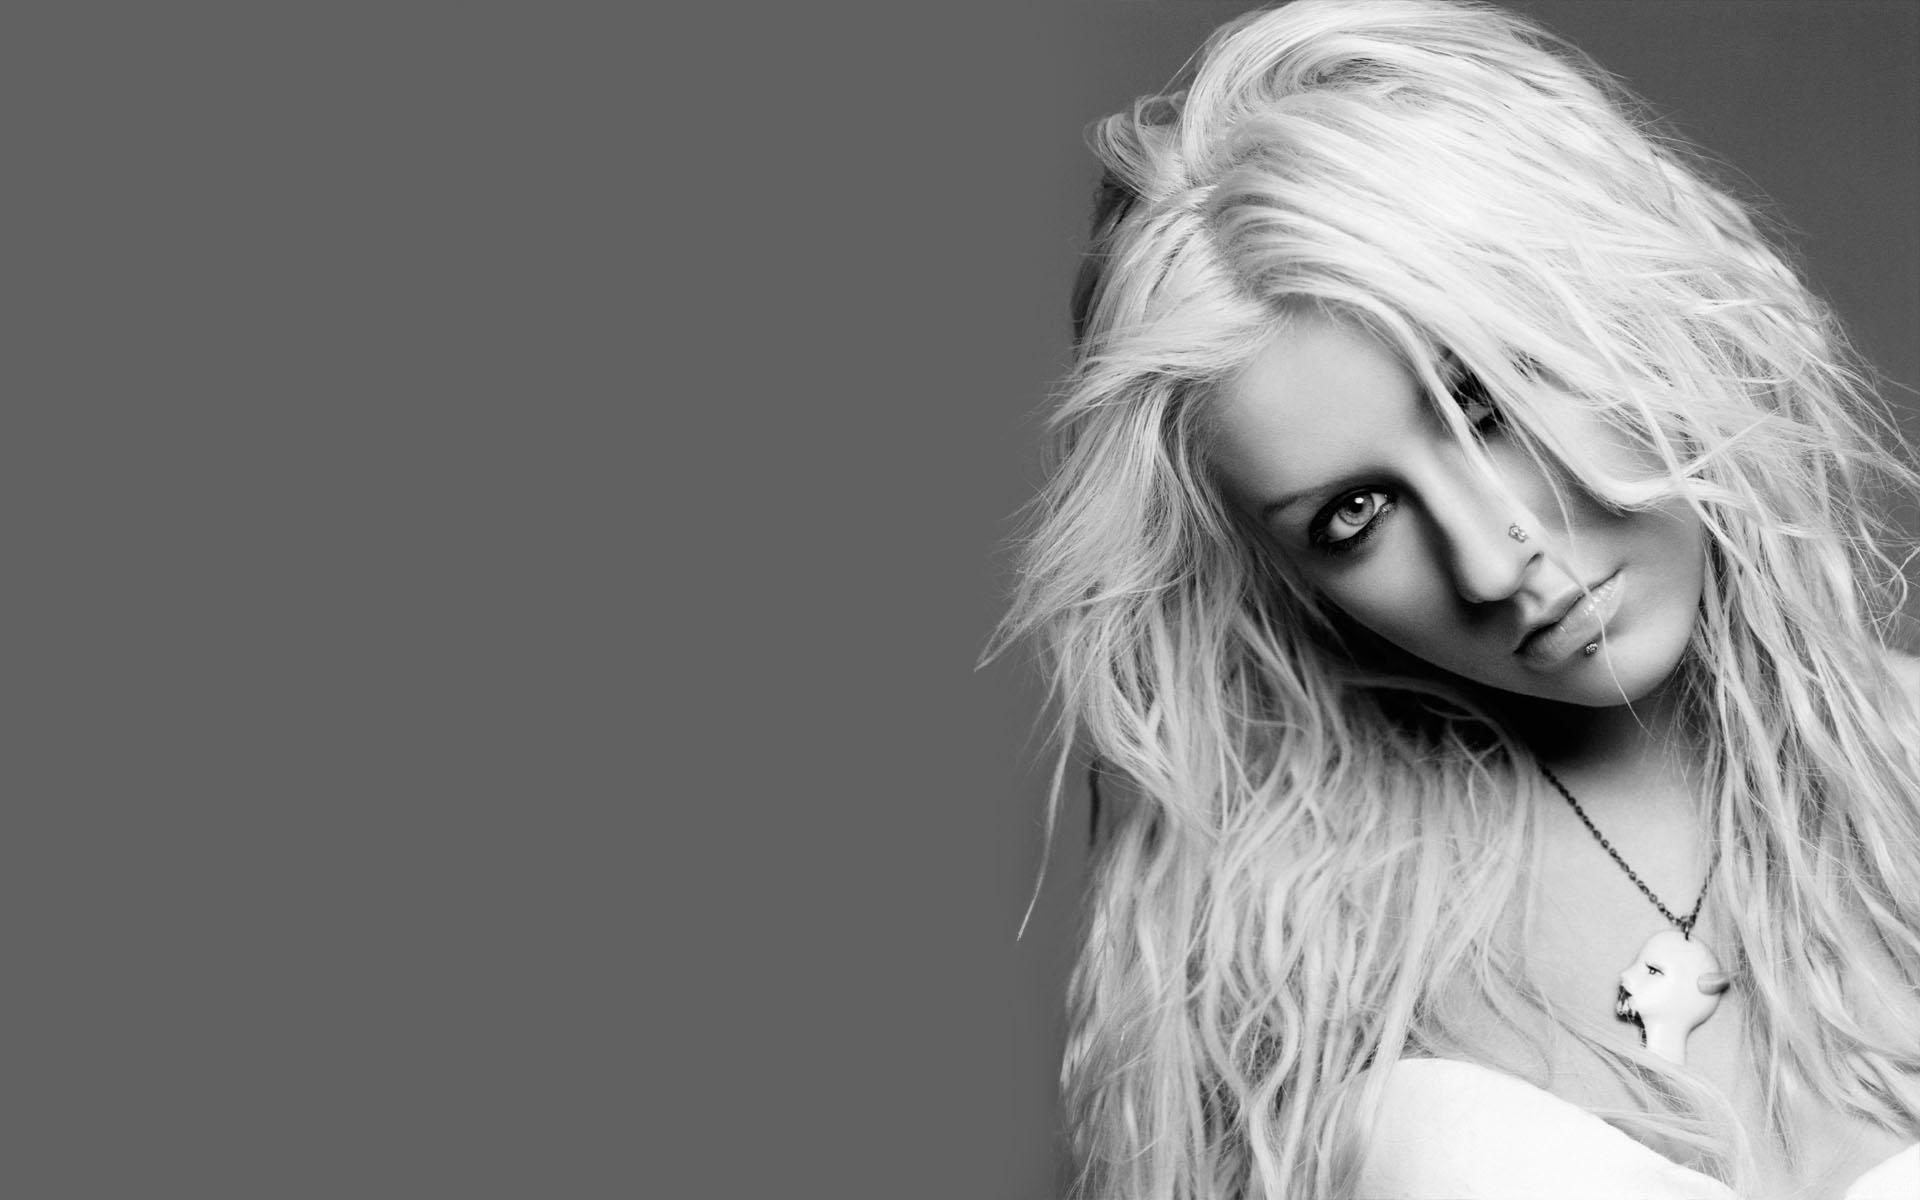 Christina Aguilera Wallpapers High Resolution 683TV8G   4USkY 1920x1200